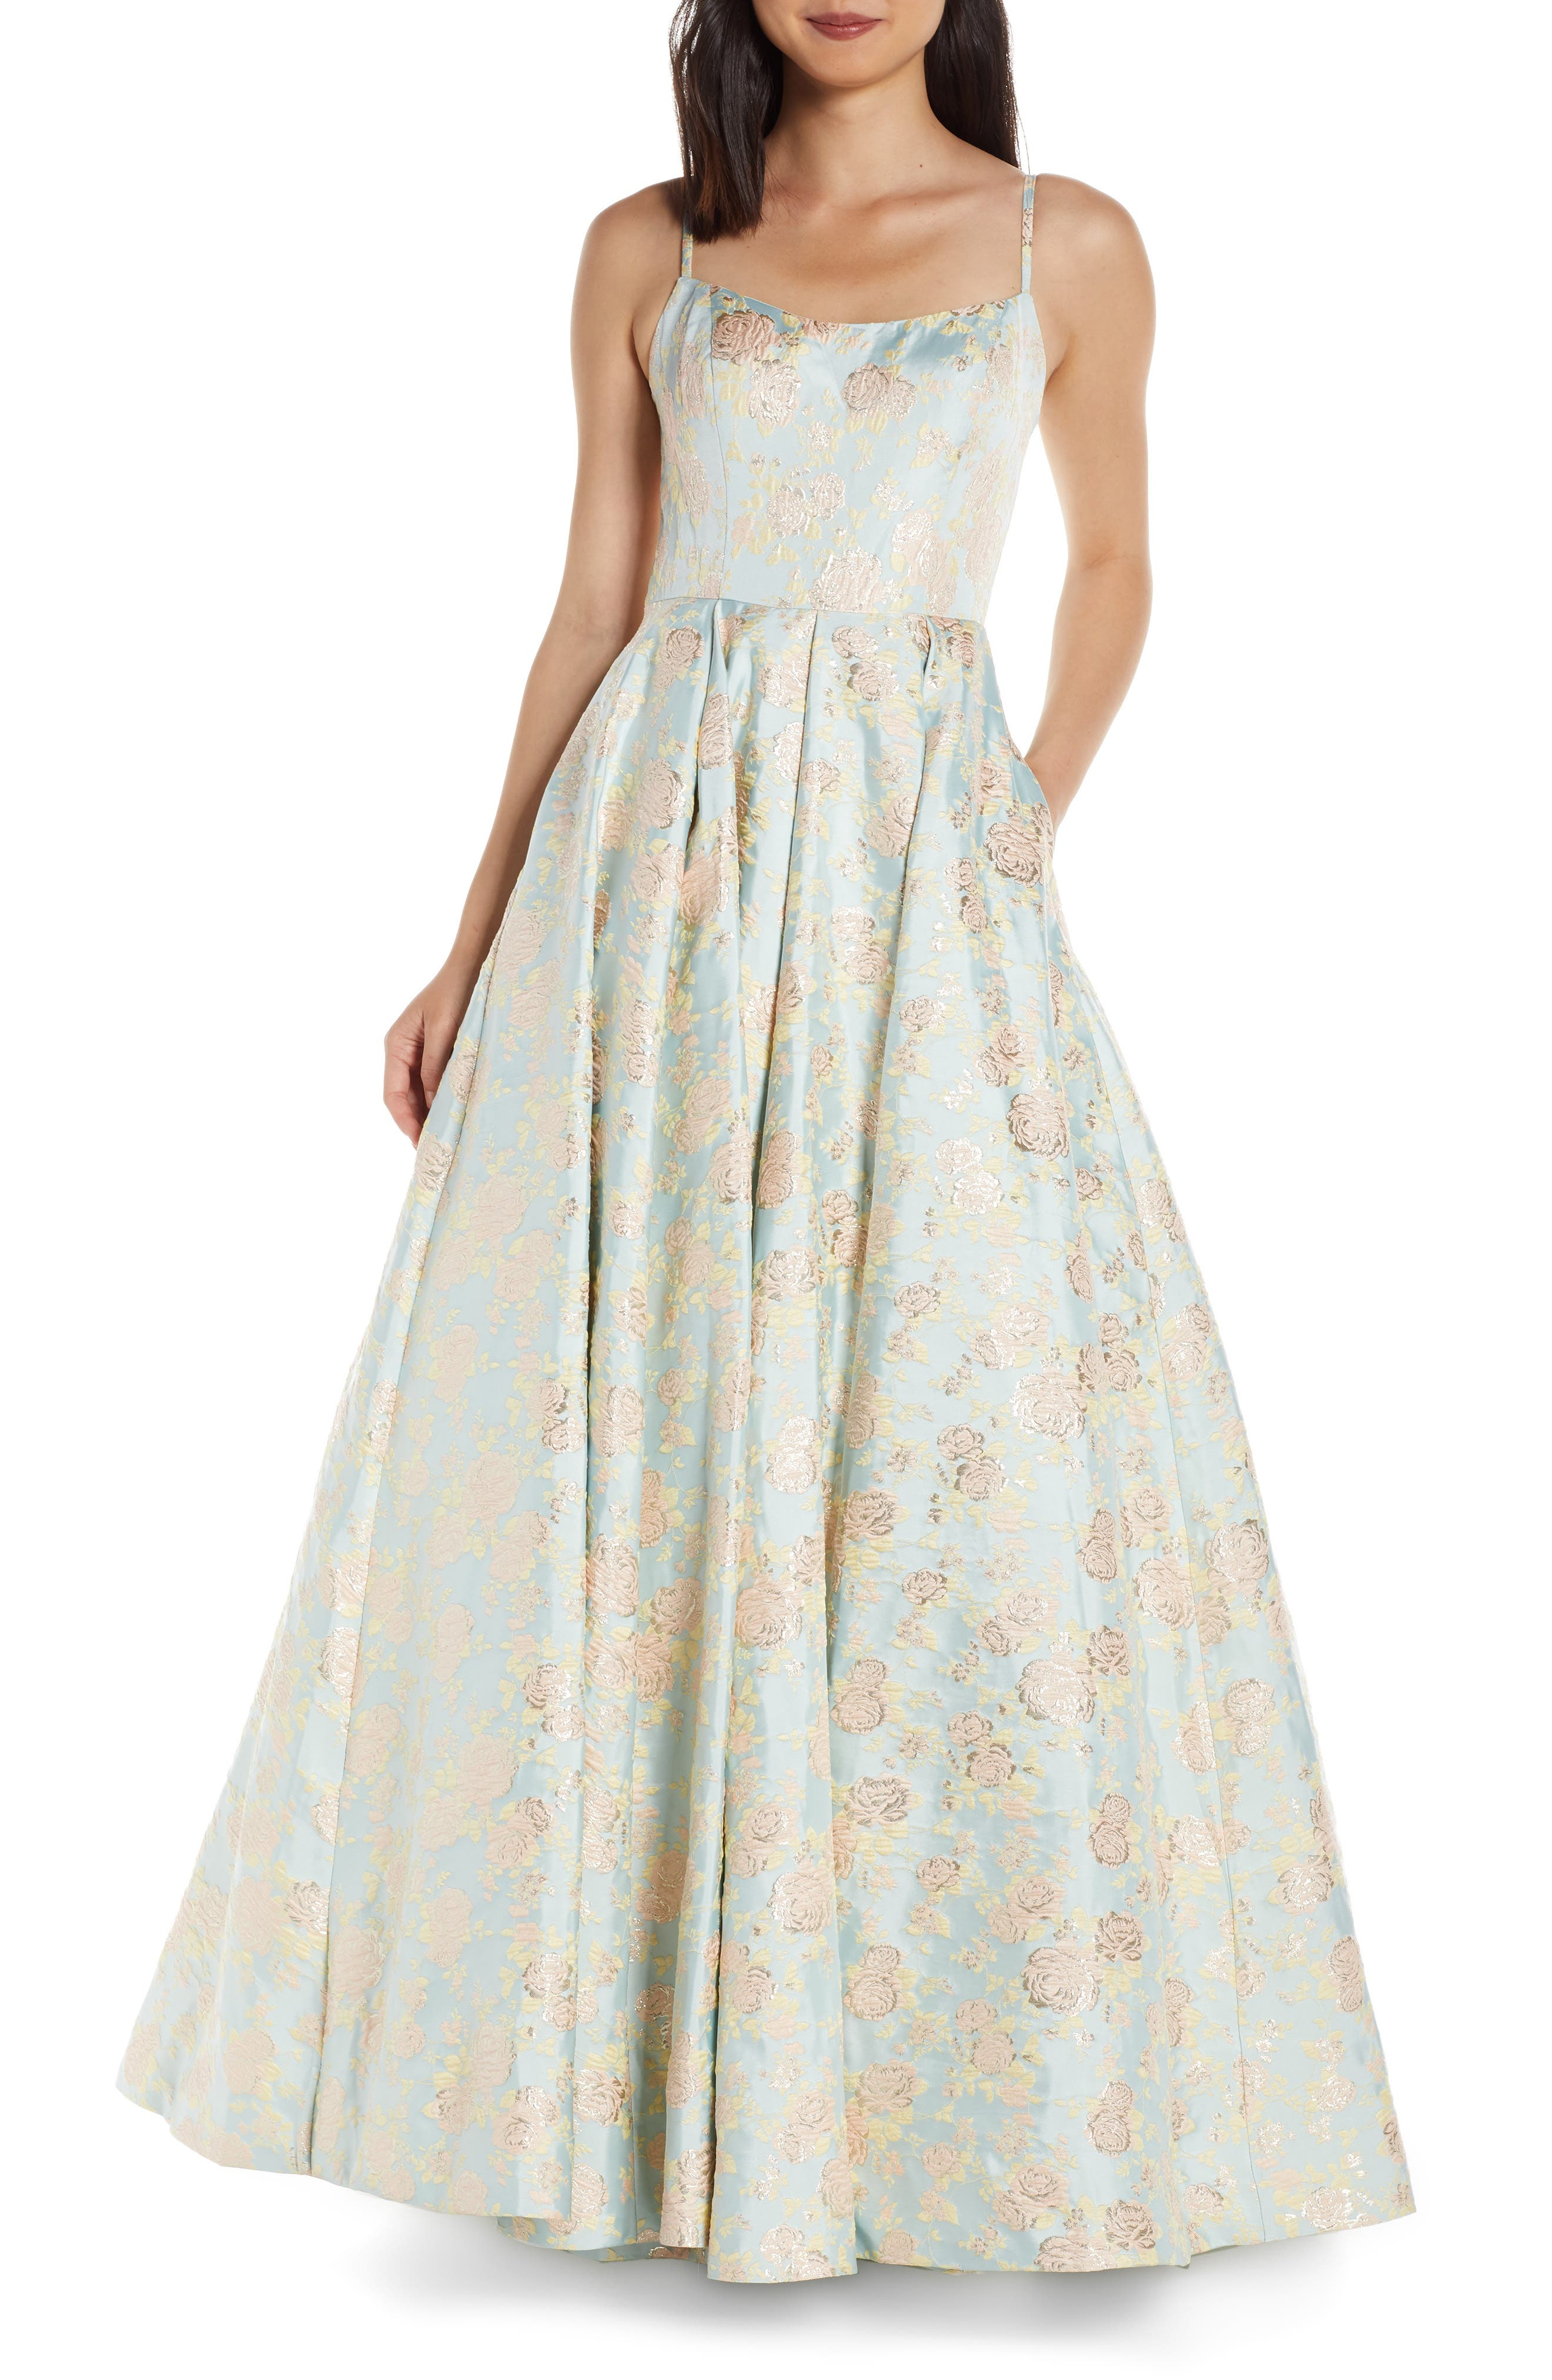 1950s Formal Dresses & Evening Gowns to Buy Womens MAC Duggal Square Neck Floral Jacquard Prom Dress $398.00 AT vintagedancer.com